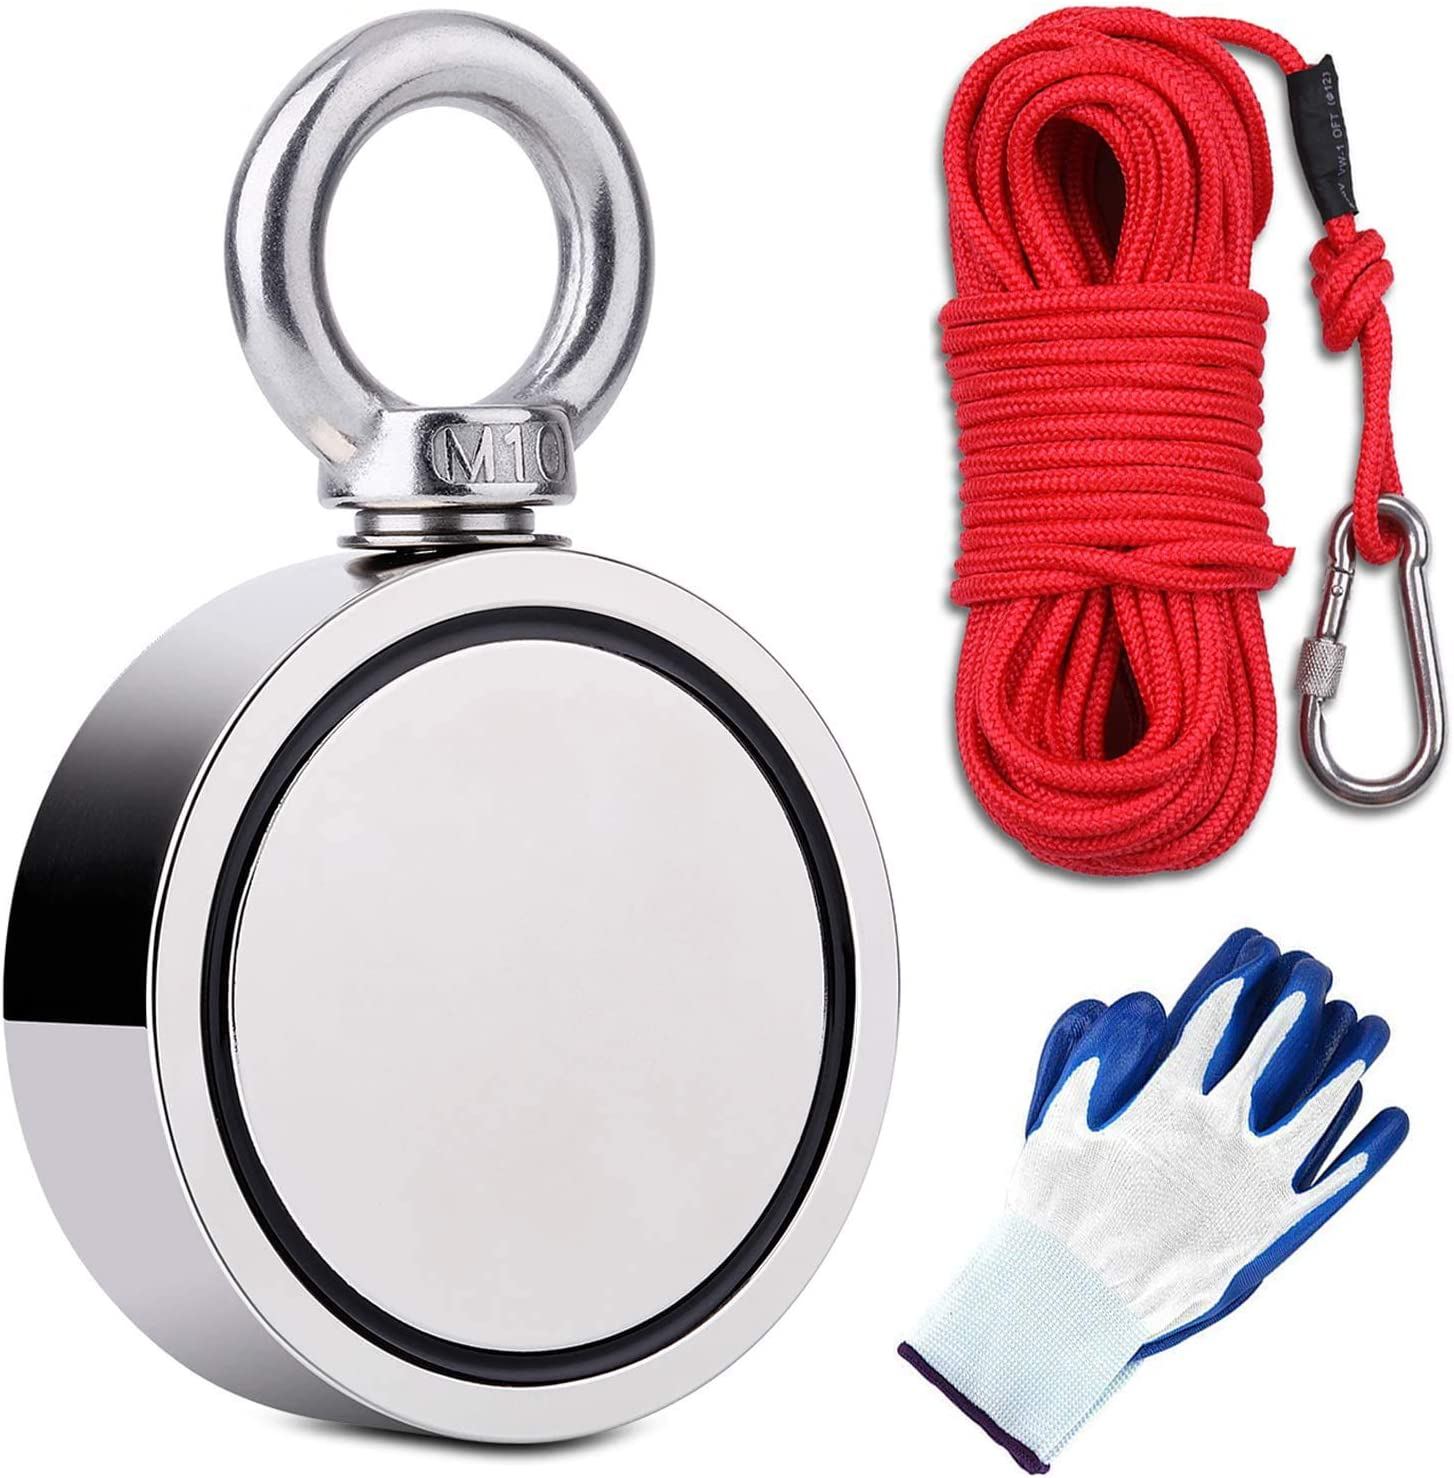 Heavy Duty Underwater Metal Detector Towel Hand Reel Magnet Fishing Kit Magnets for Kids and Adults Viper Mag Gloves 500lbs Powerful Strong Detecting Neodymium Magnet Complete kit Rope